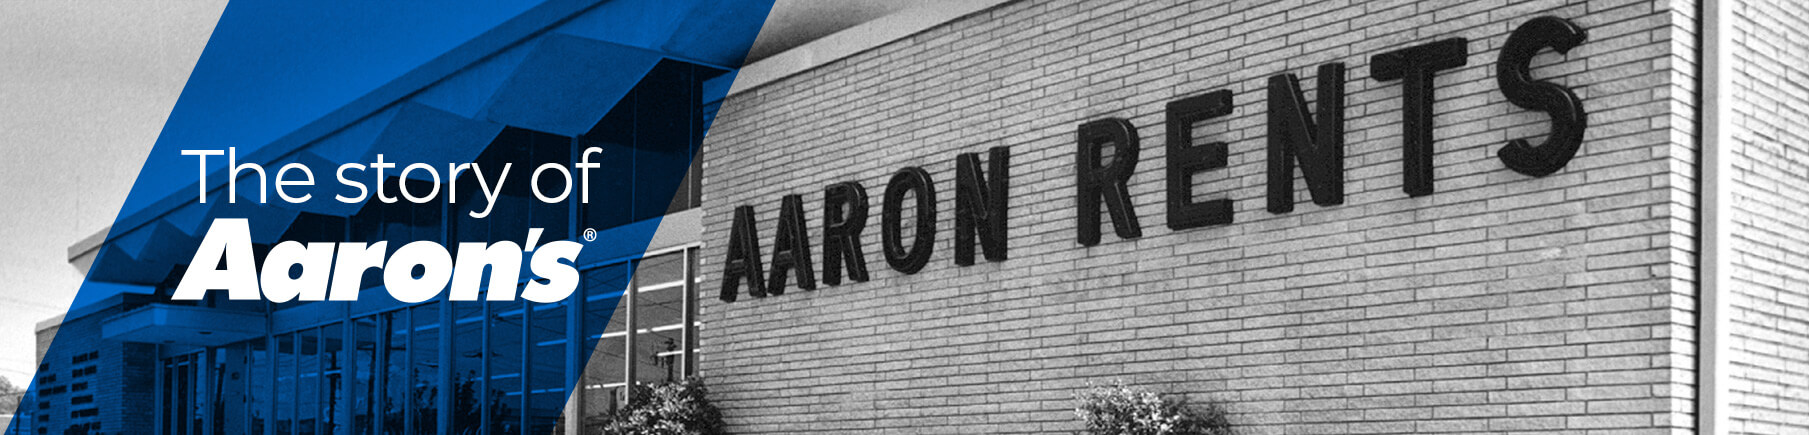 The story of Aaron's old store photo